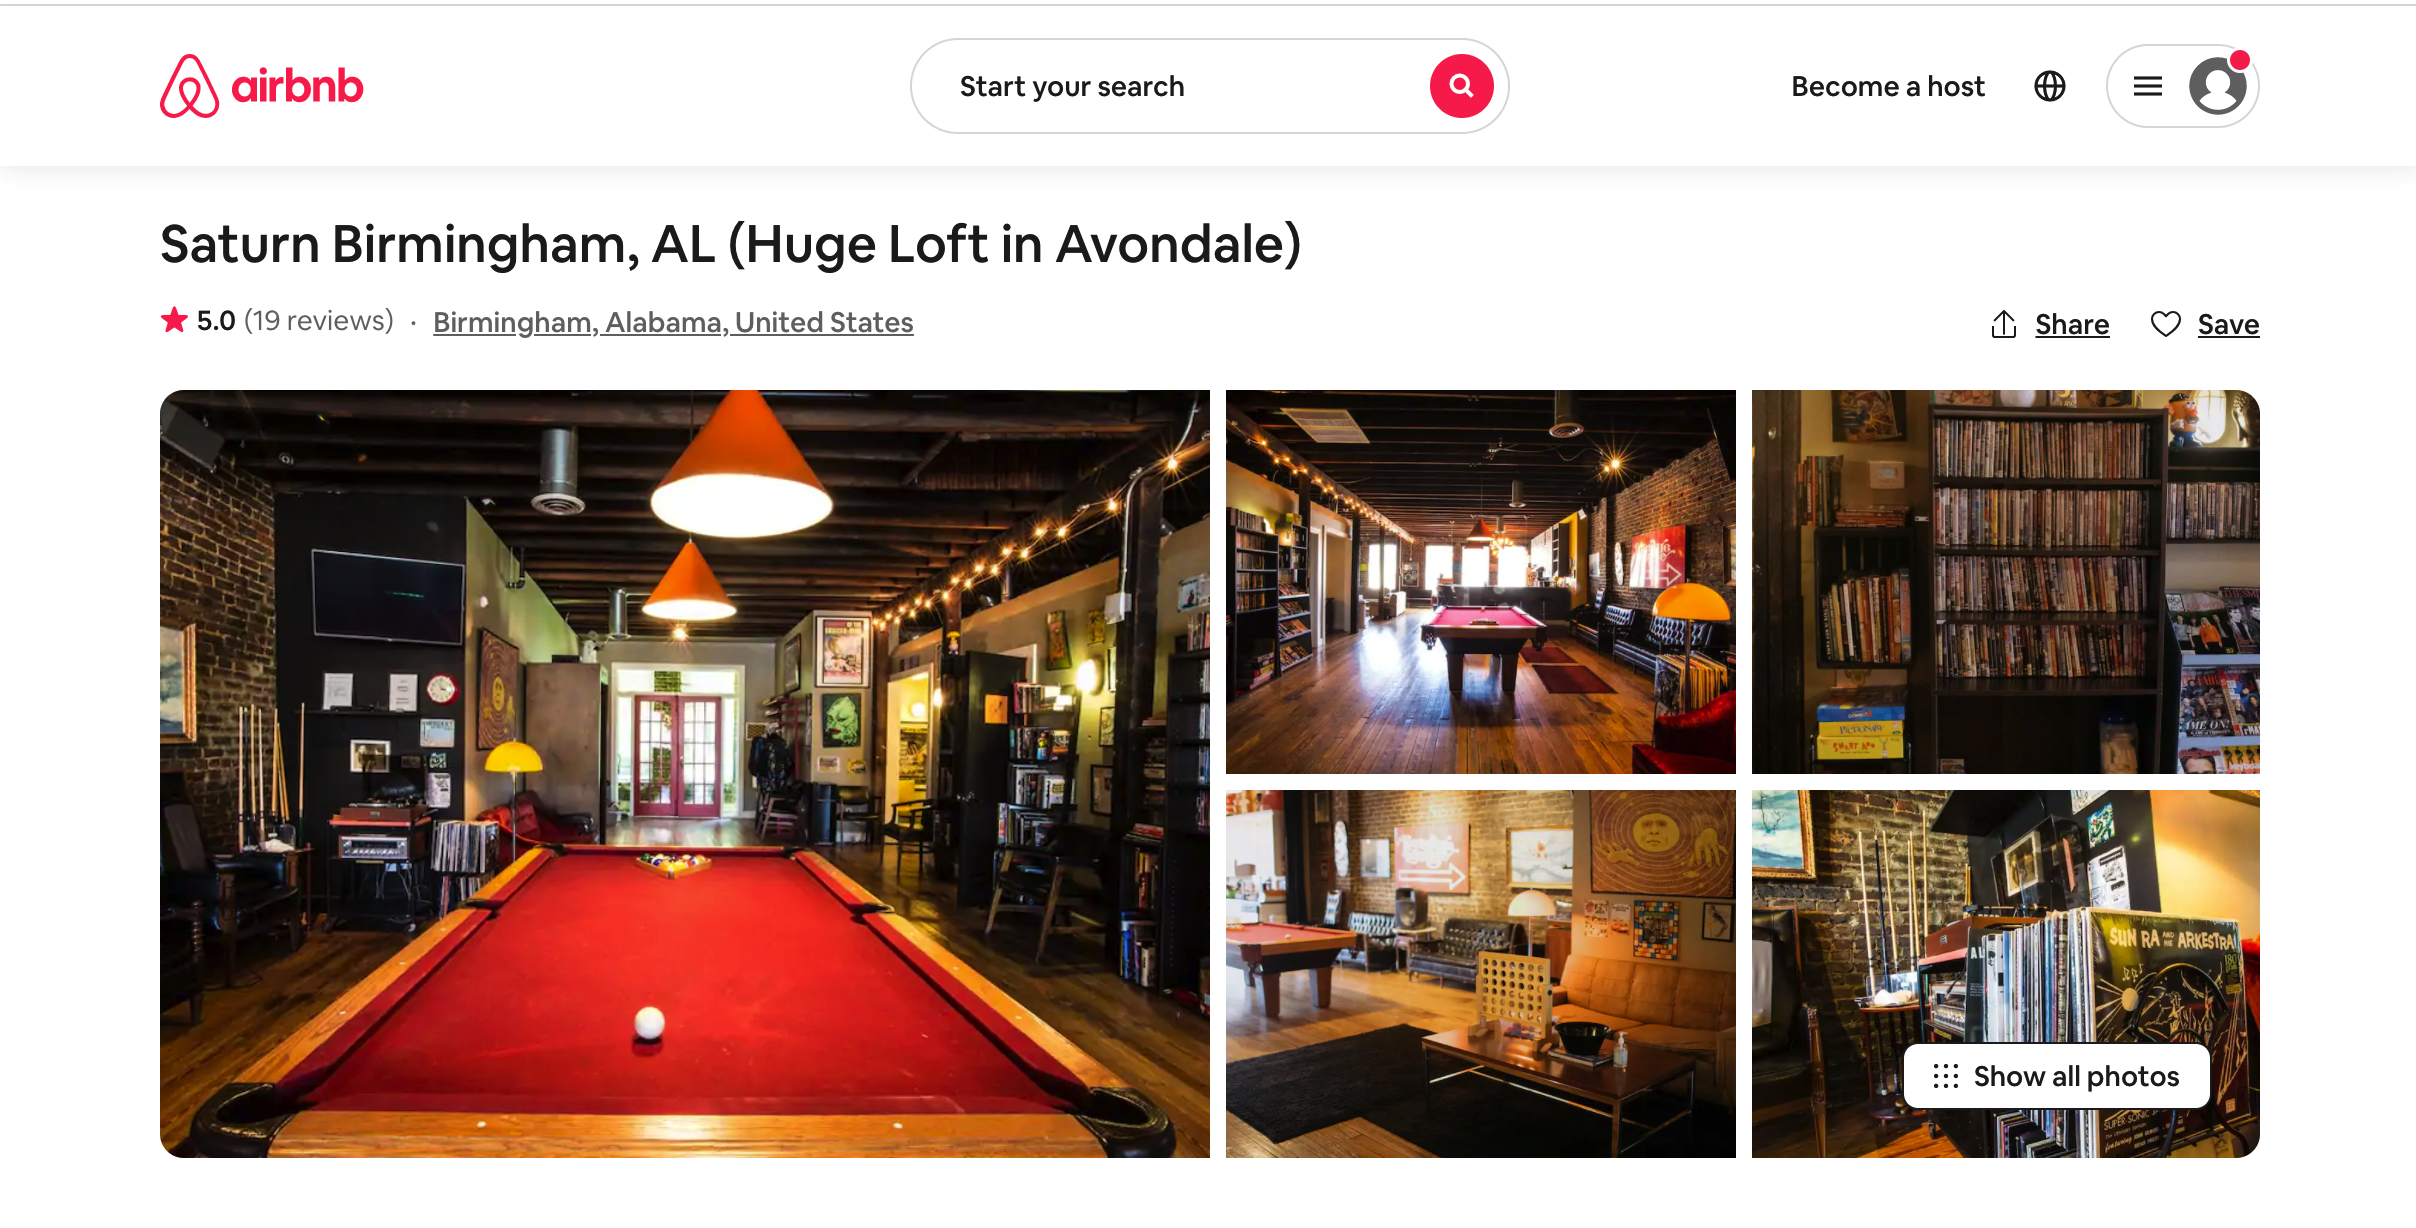 The Airbnb listing for the Saturn Birmingham musicians' loft.